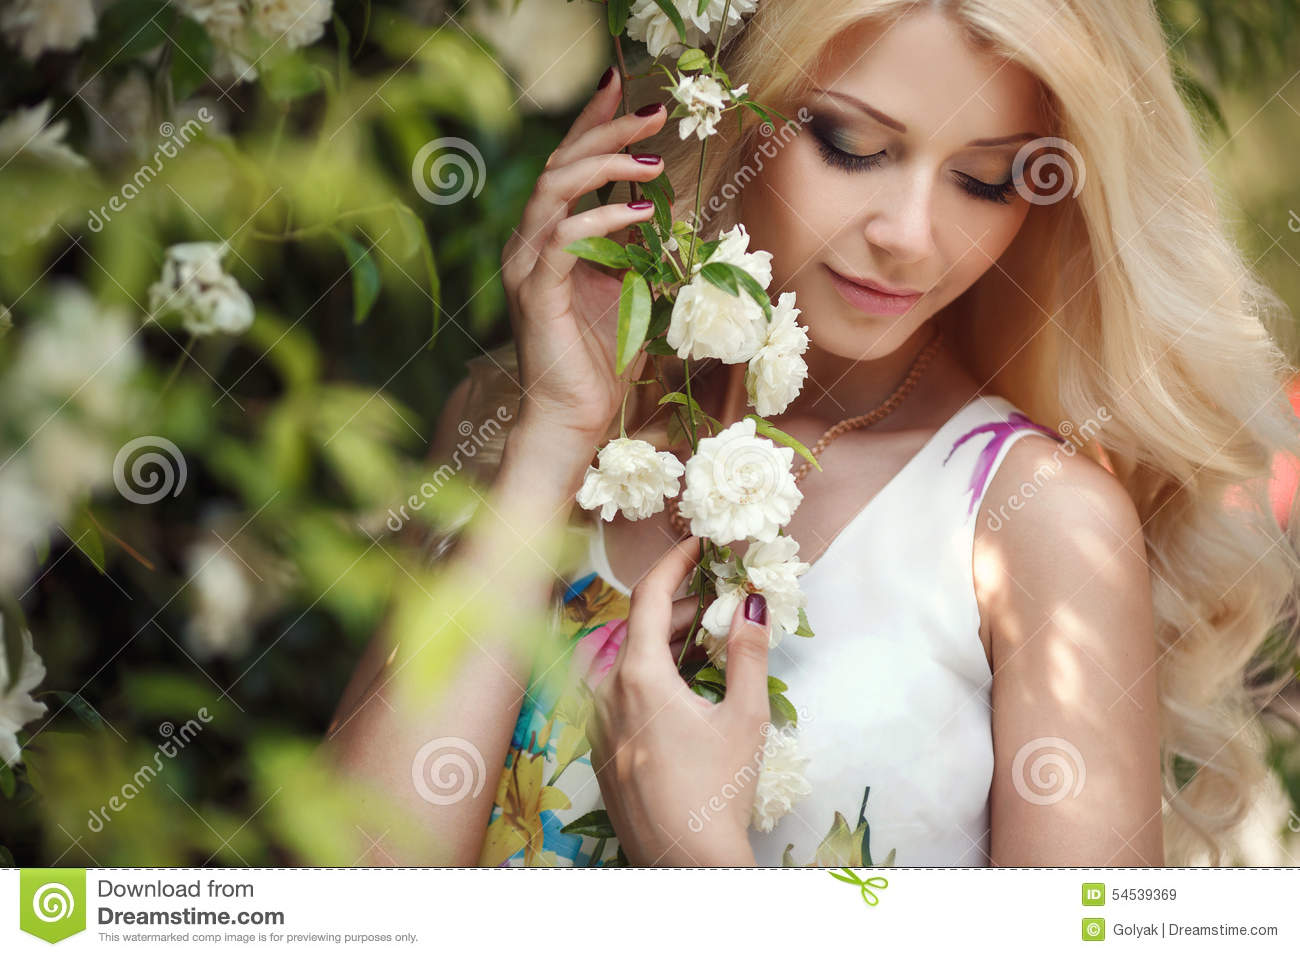 Beautiful woman in Park near the Bush blooming roses